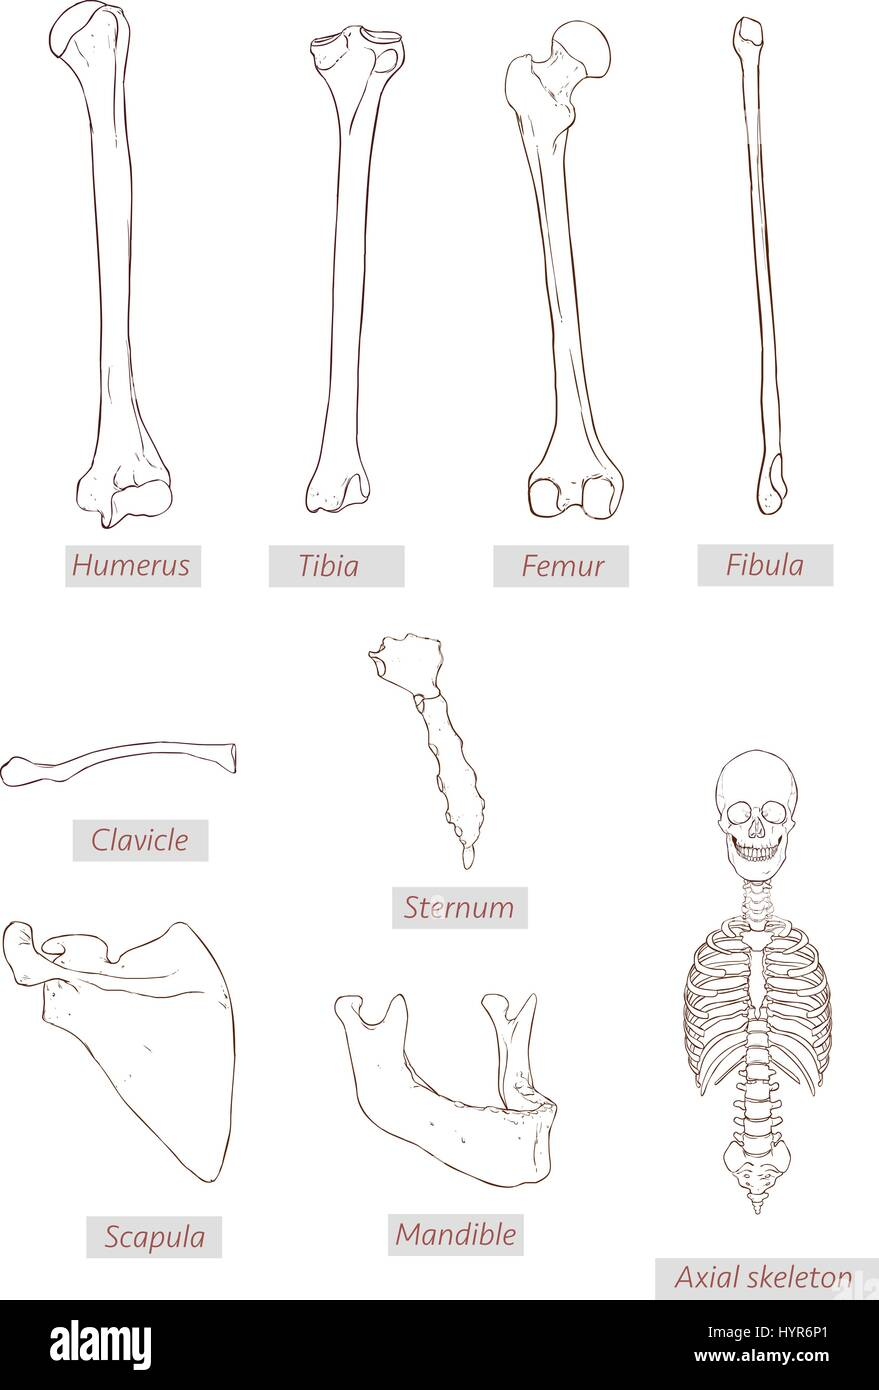 Humerustibiafemurfibulaclaviclesternumscapulamandibleaxial humerustibiafemurfibulaclaviclesternumscapulamandibleaxial skeleton detailed medical illustrations tin medical terms isolated on a white b pooptronica Gallery